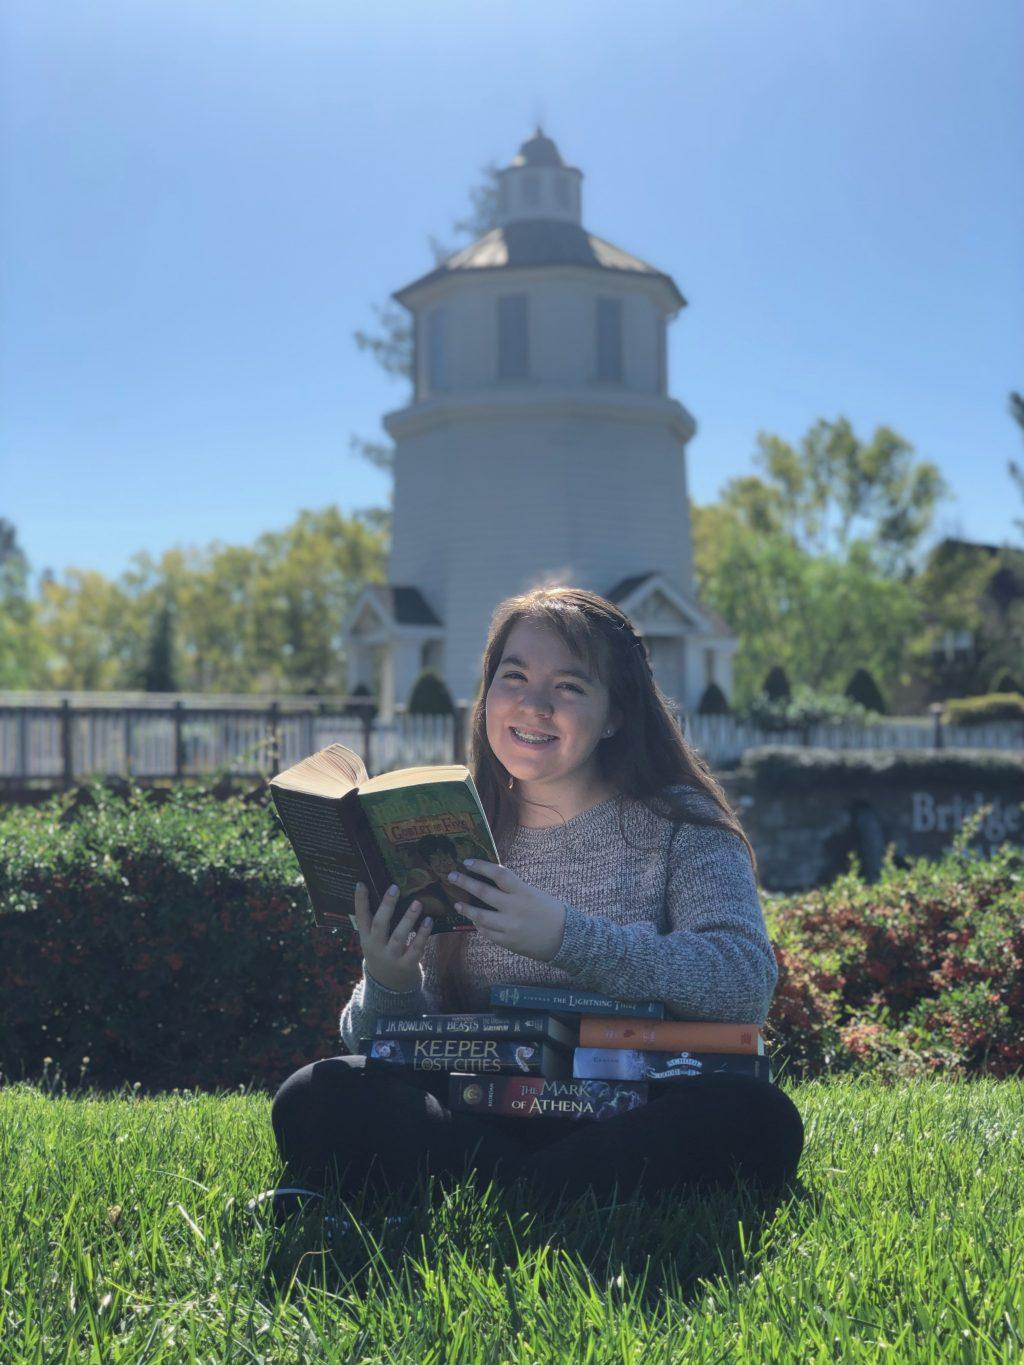 Reader Navia incorporated one of her interests, books, into her senior portraits.